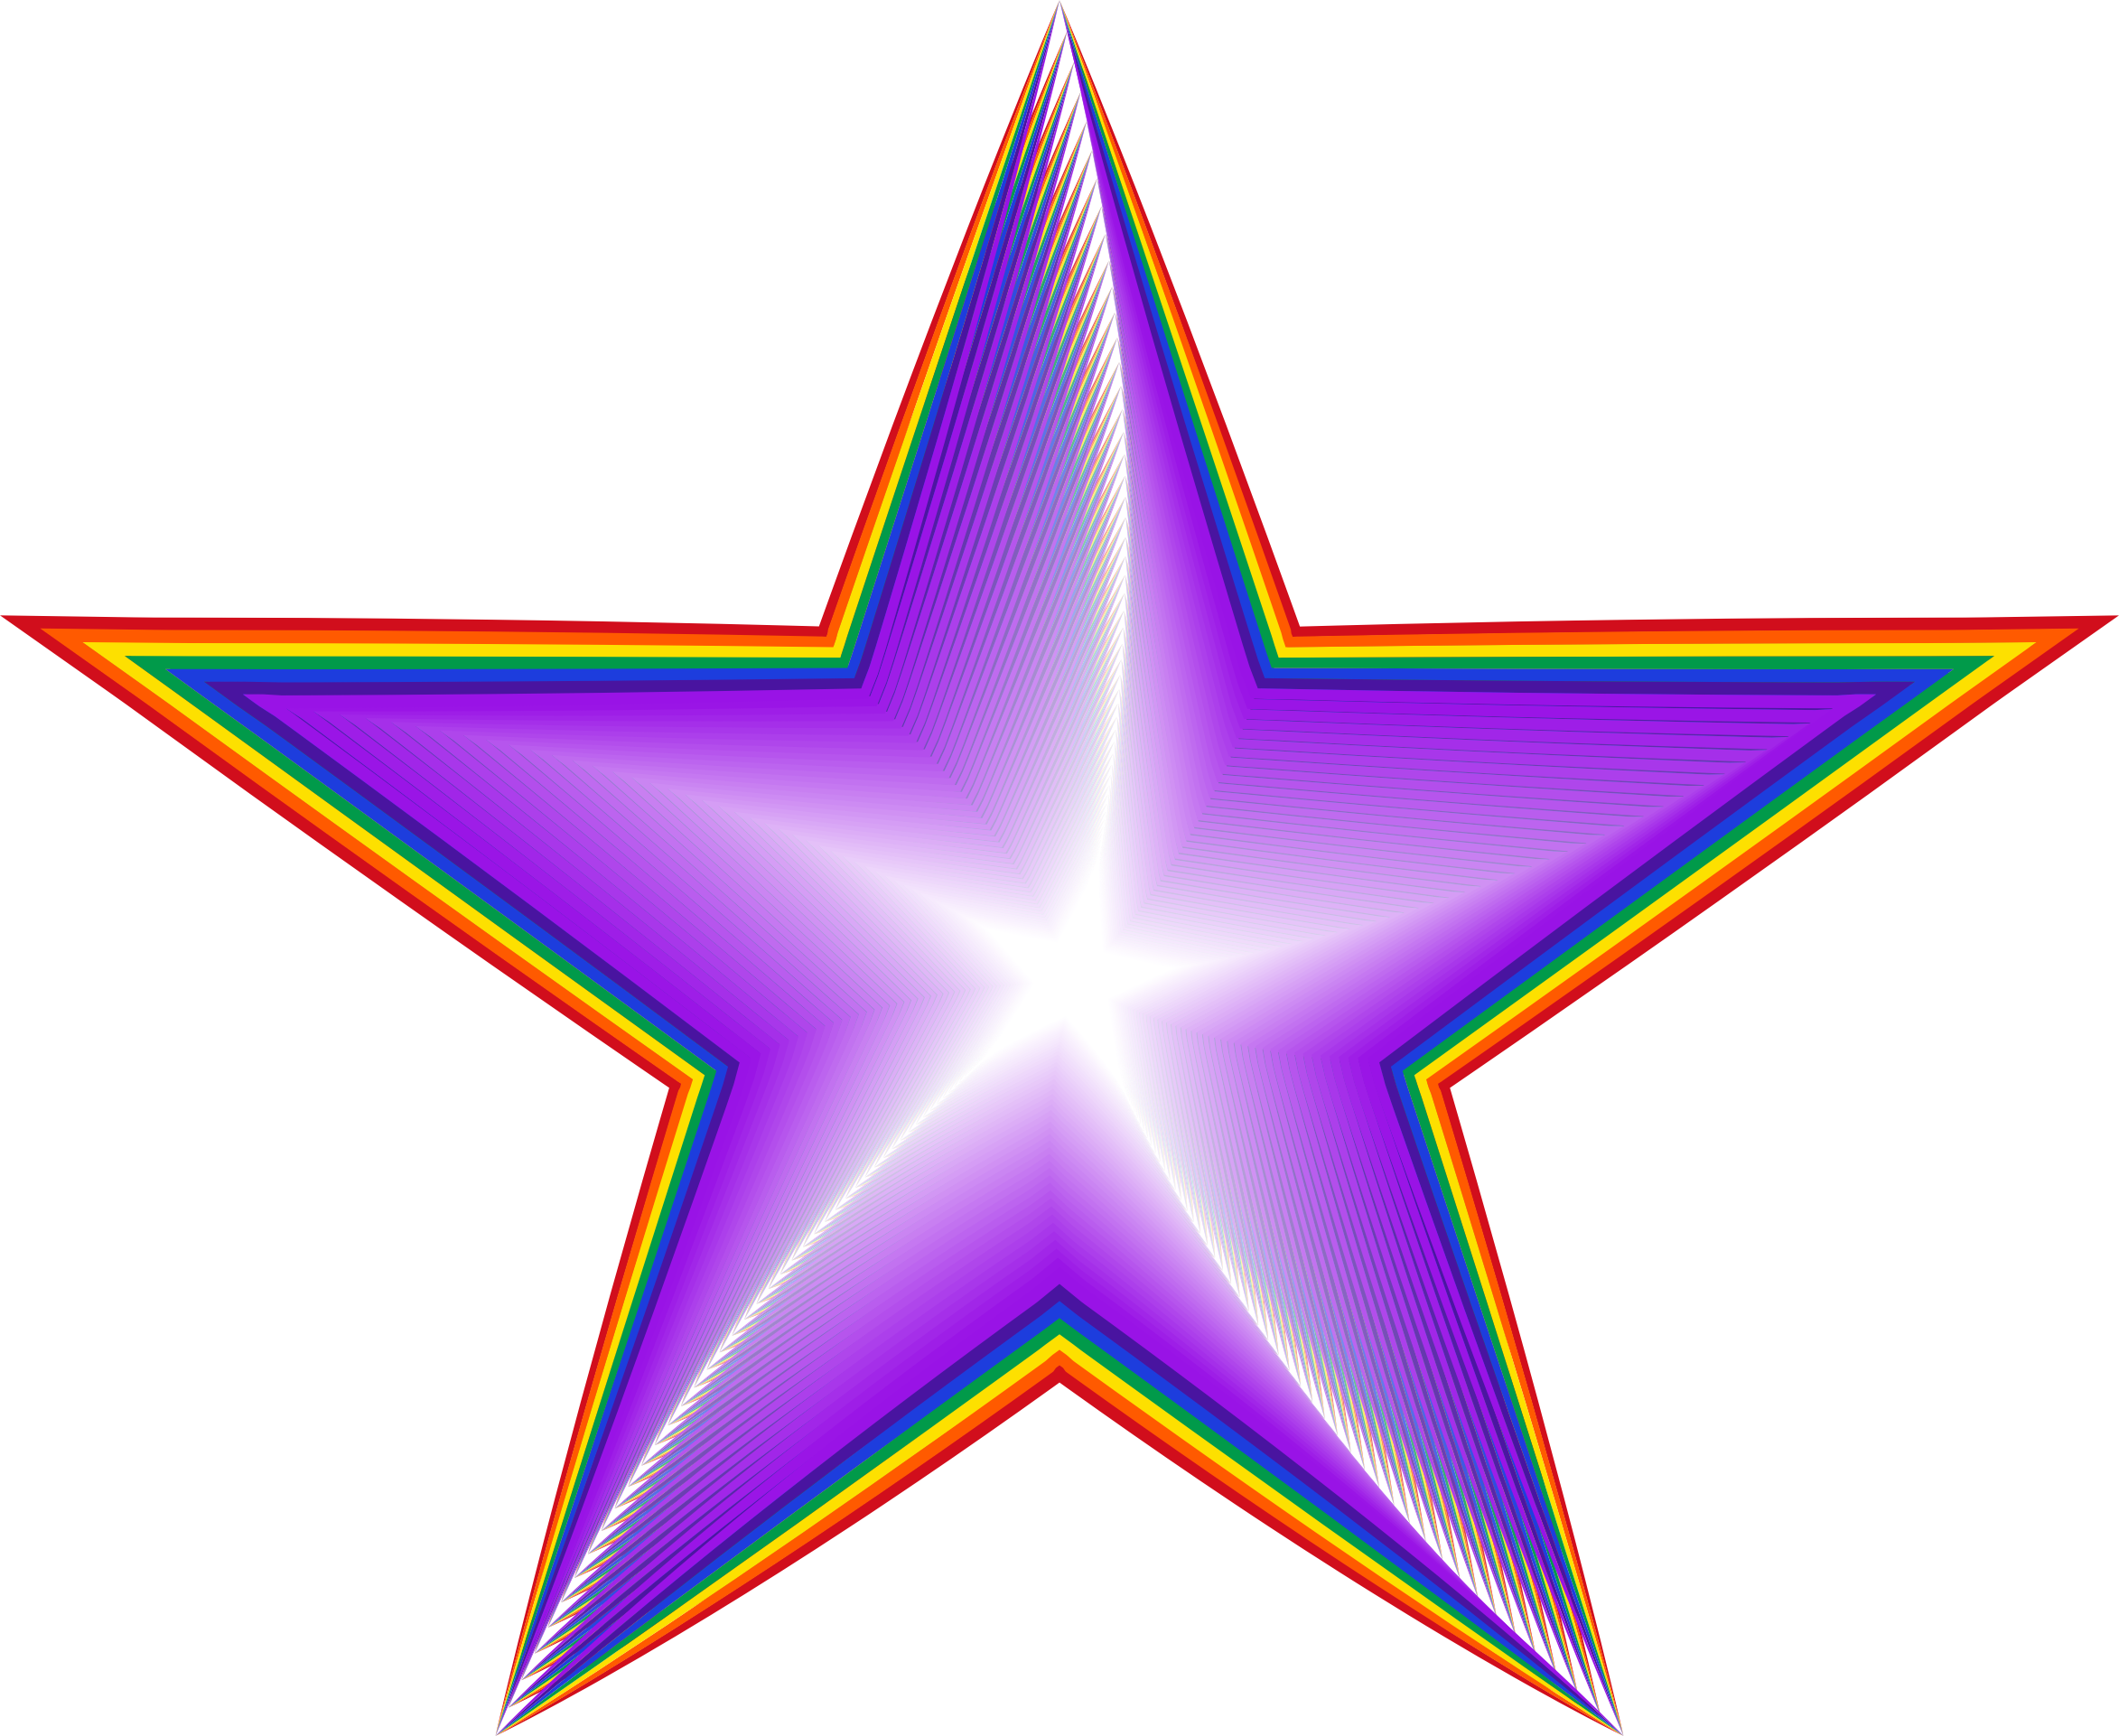 Spiritual Rainbow Star by GDJ